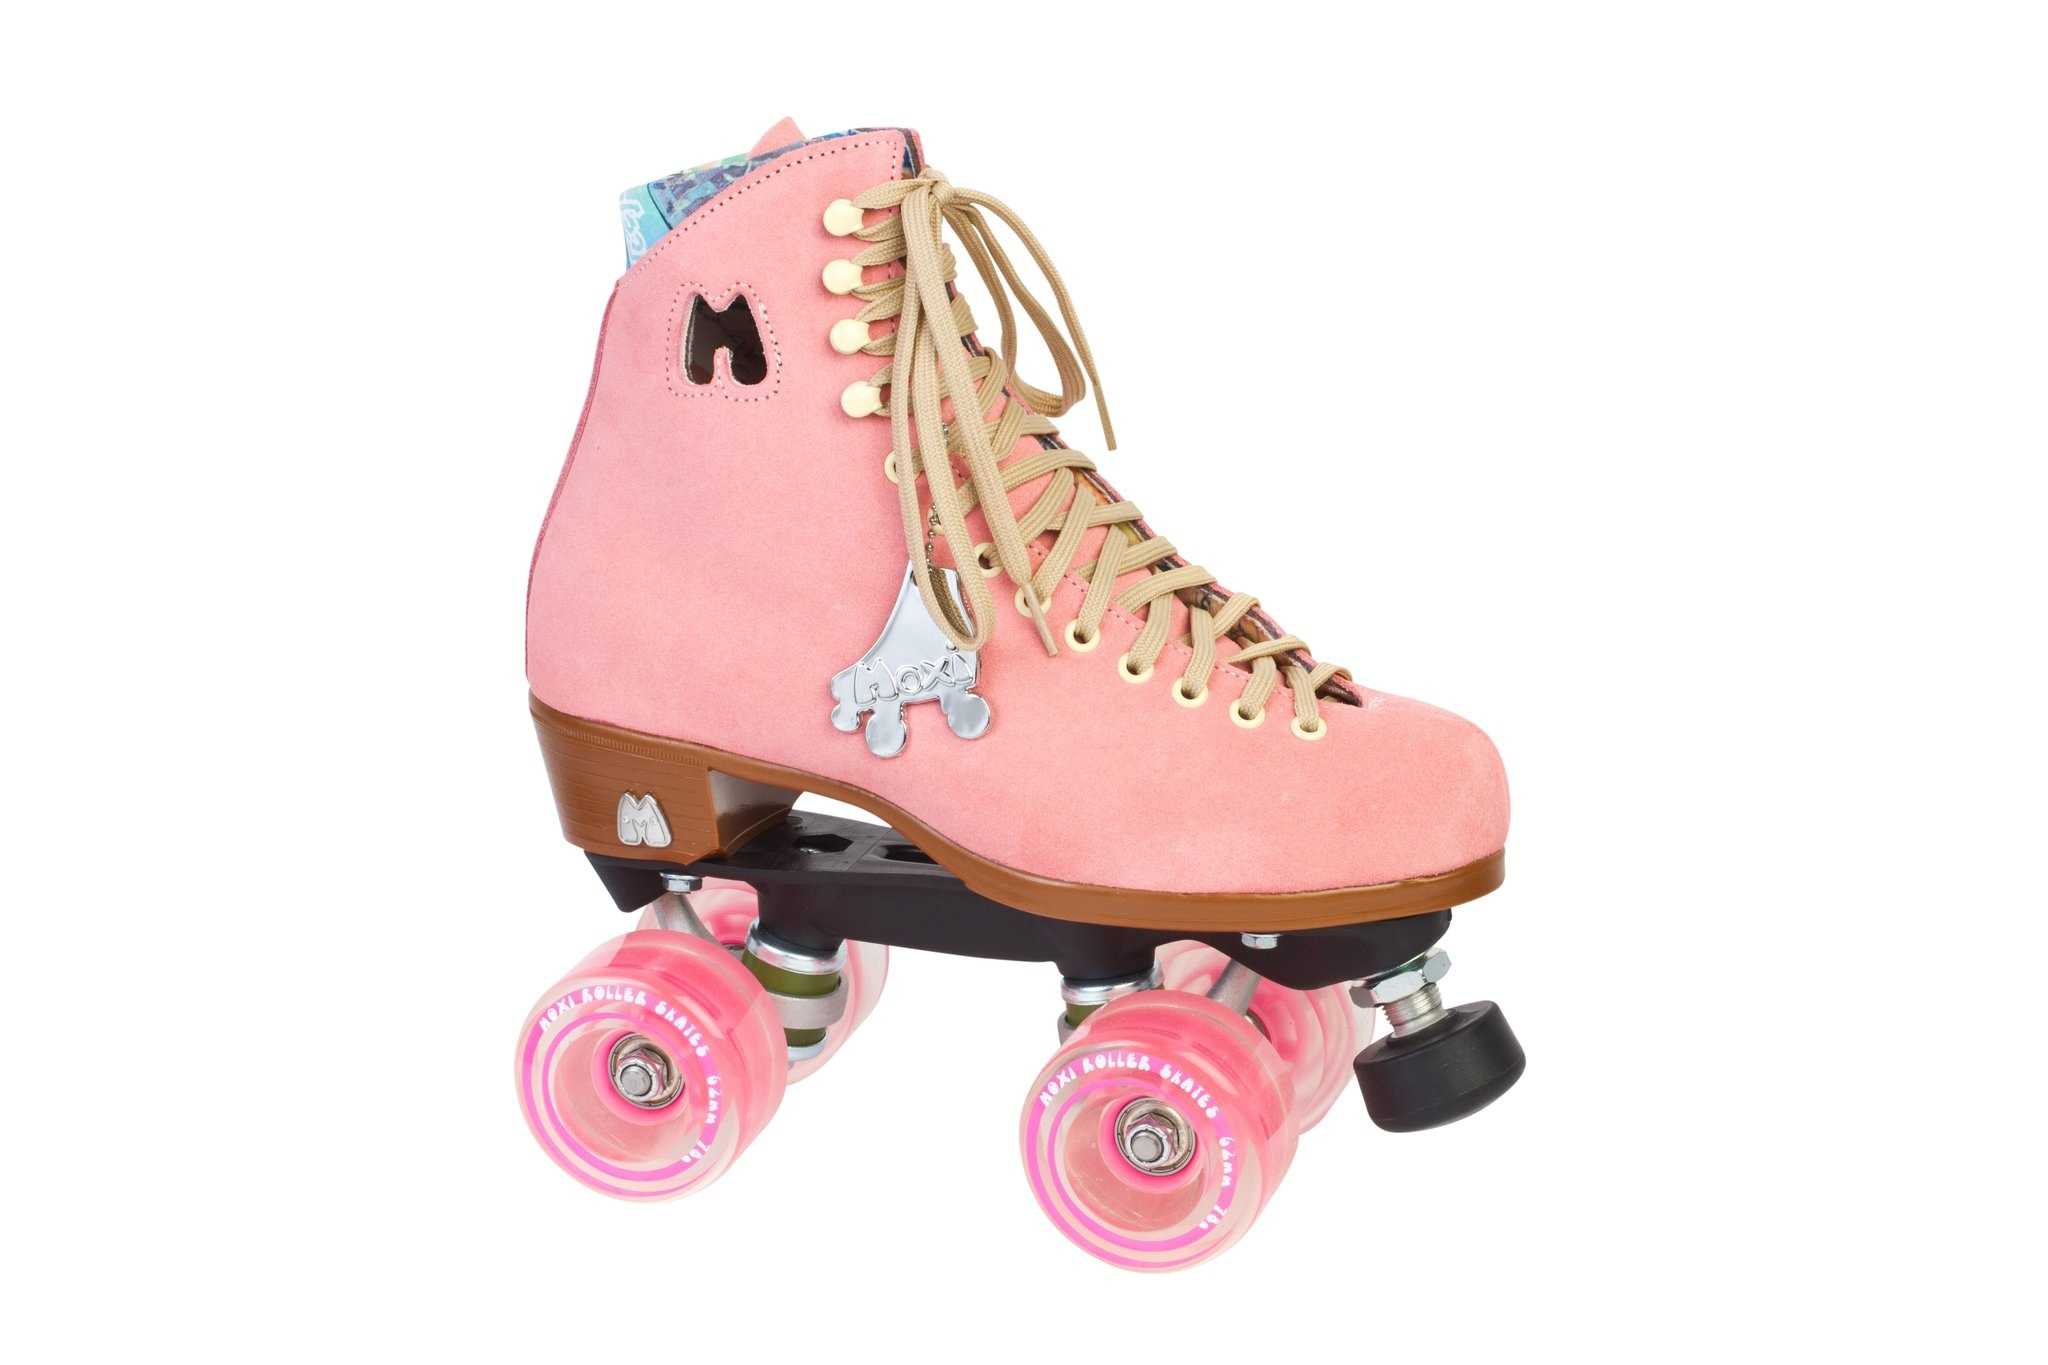 Moxi Lolly Skate Strawberry Pink